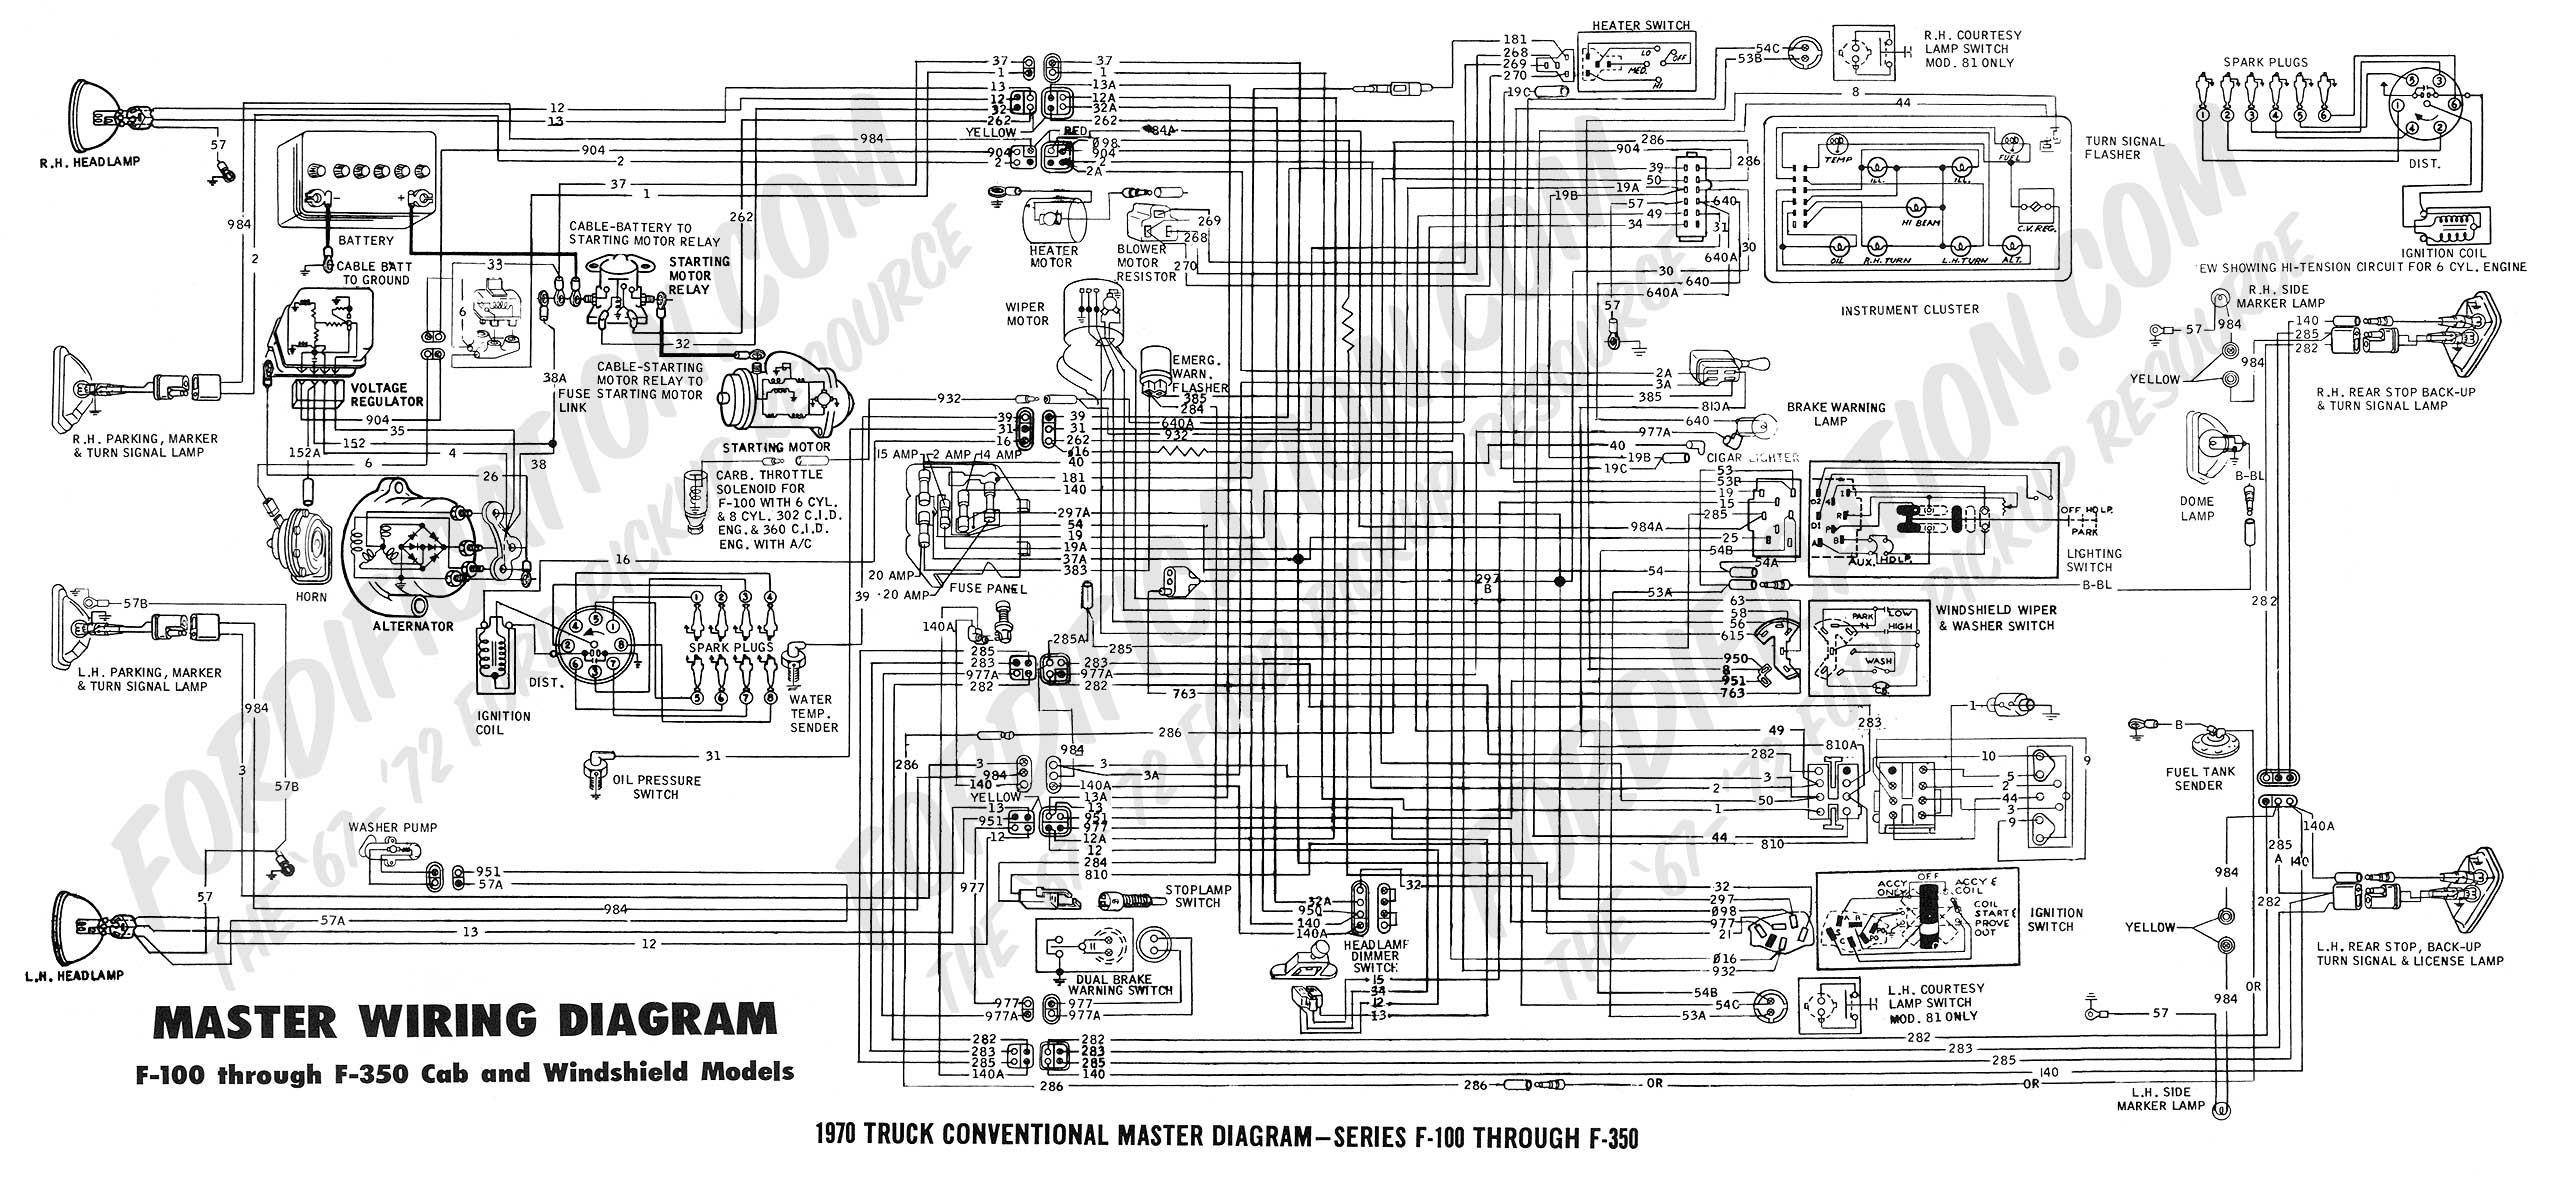 General Motors Wiring Diagrams additionally Tvr Griffith Engine Bay 2760 further Bodengruppe Und Kofferraumboden as well Daewoo Lanos Engine For Sale additionally 1966 Newport Wiring Diagram. on 1965 tvr wiring diagram